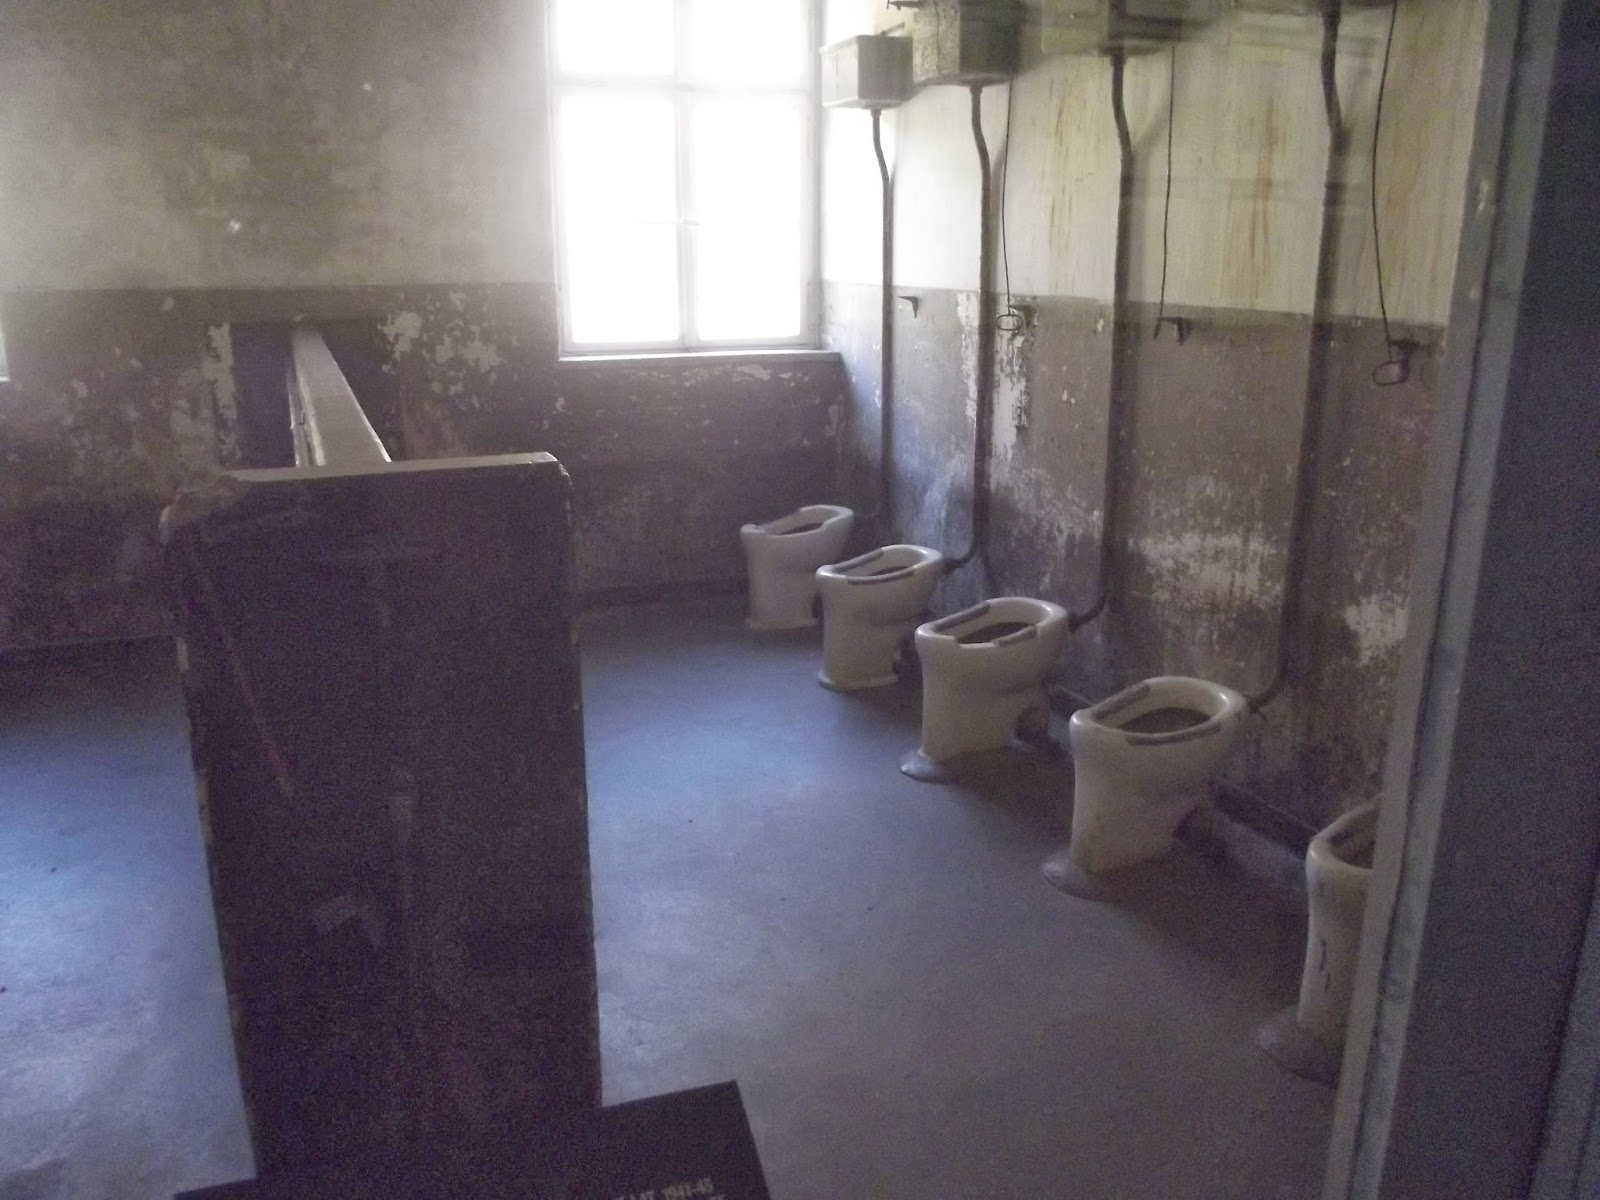 Auschwitz barrack bathroom